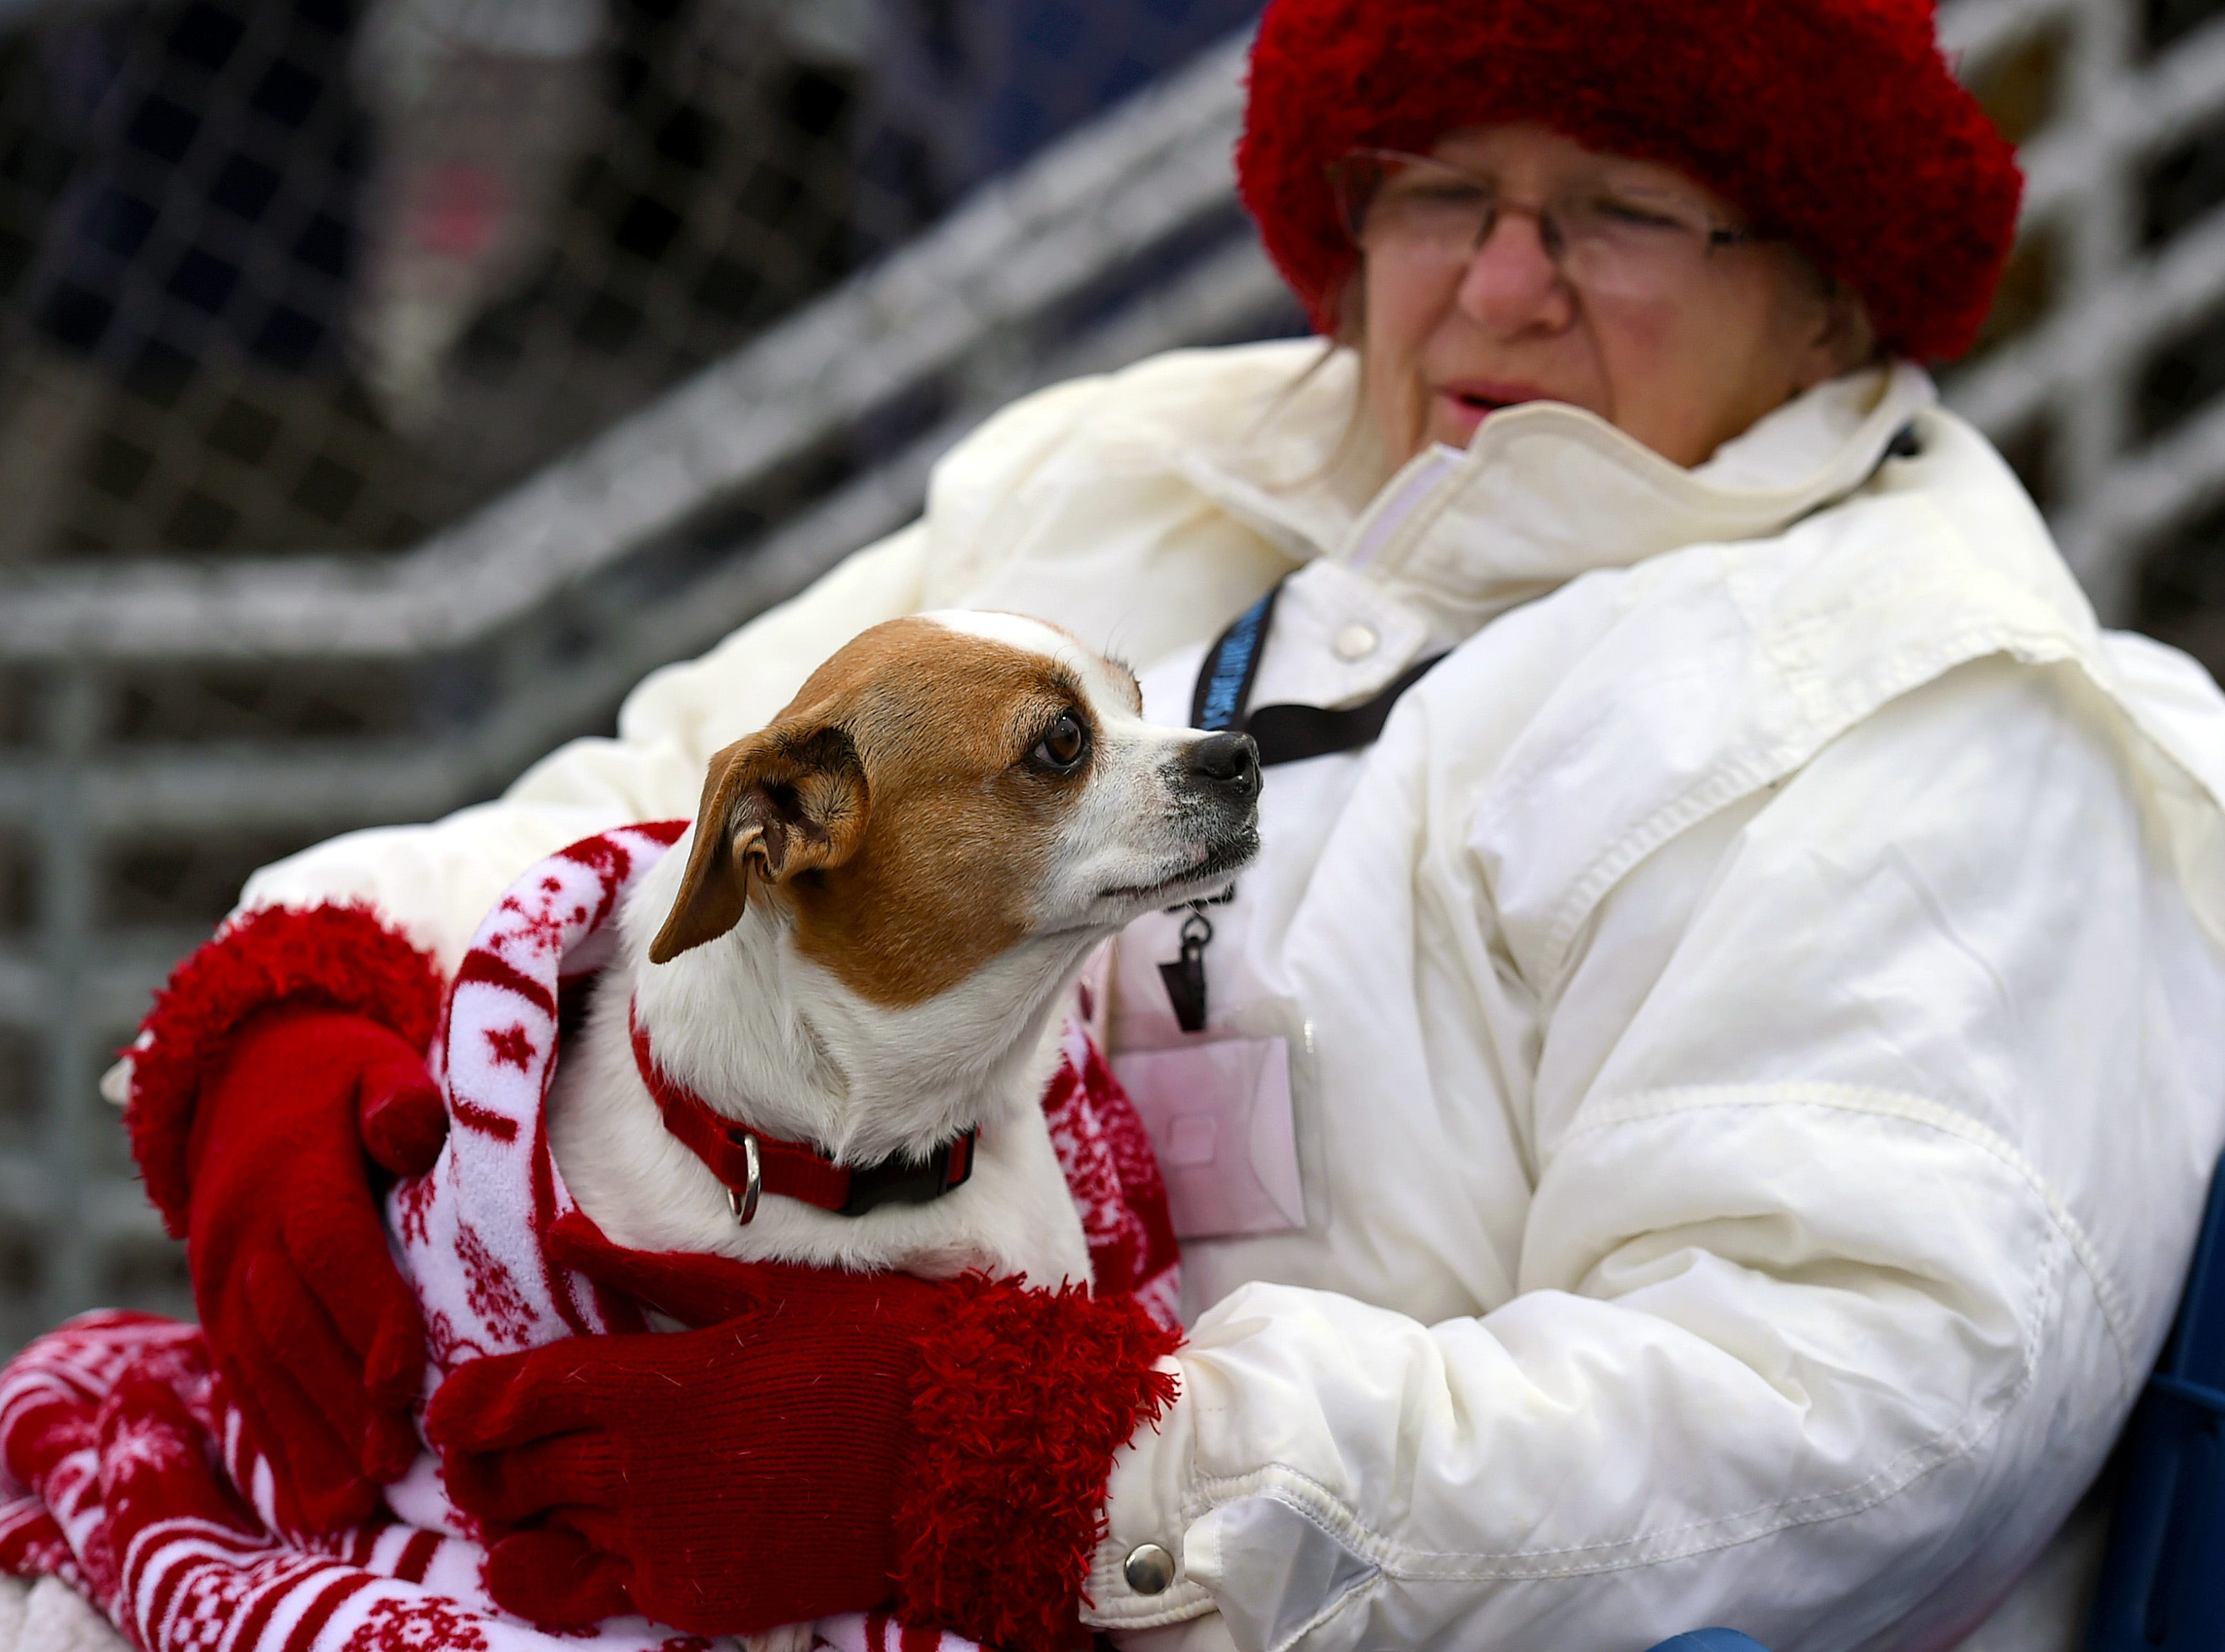 Marion Clonch, a volunteer with Animal Care Sanctuary, with her dog Augie during Mutt Monday at the Binghamton Rumble Ponies game NYSEG Stadium. April 29, 2019.